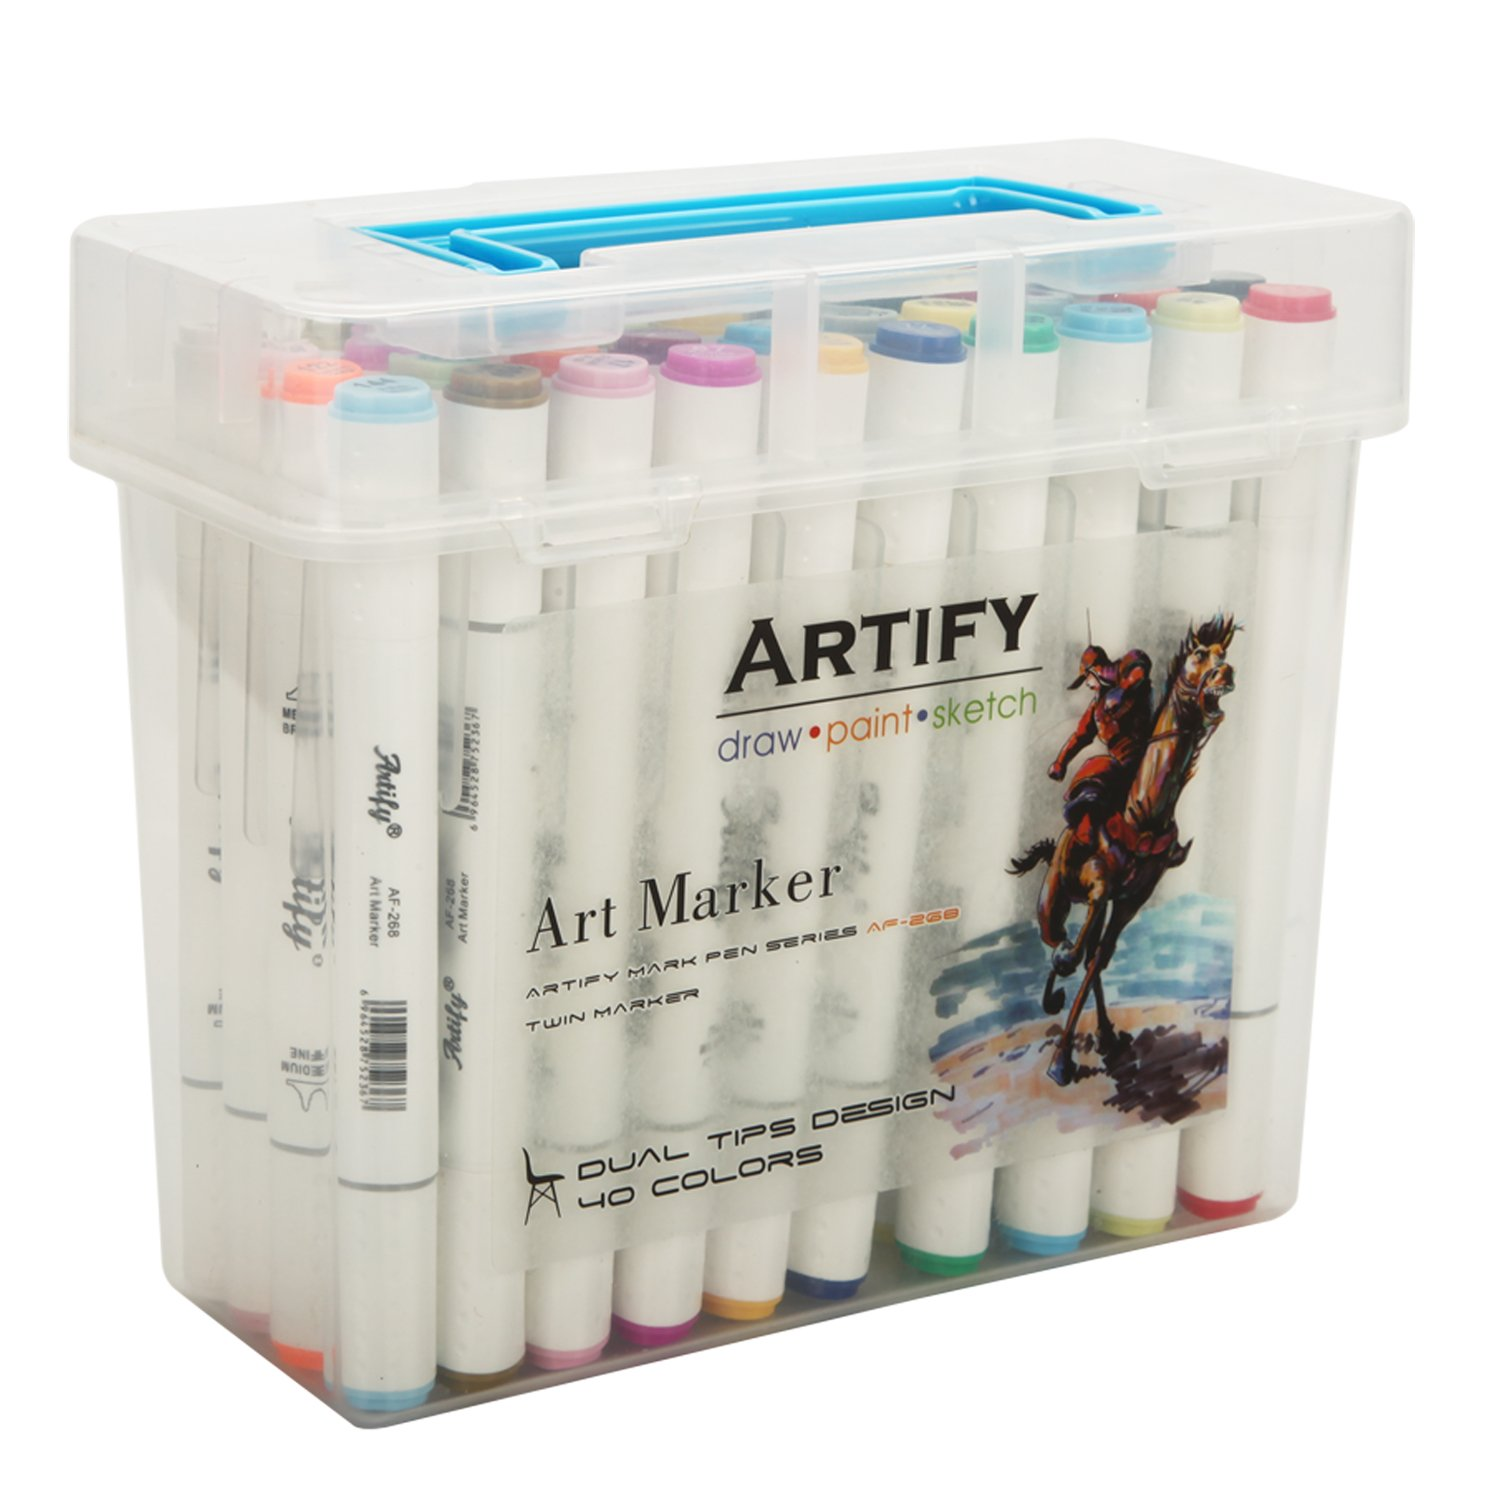 Artify Artist Alcohol Based Art Marker Set/40 Colors Dual Tipped Twin Marker Pens with Plastic Carrying Case/AP Certified